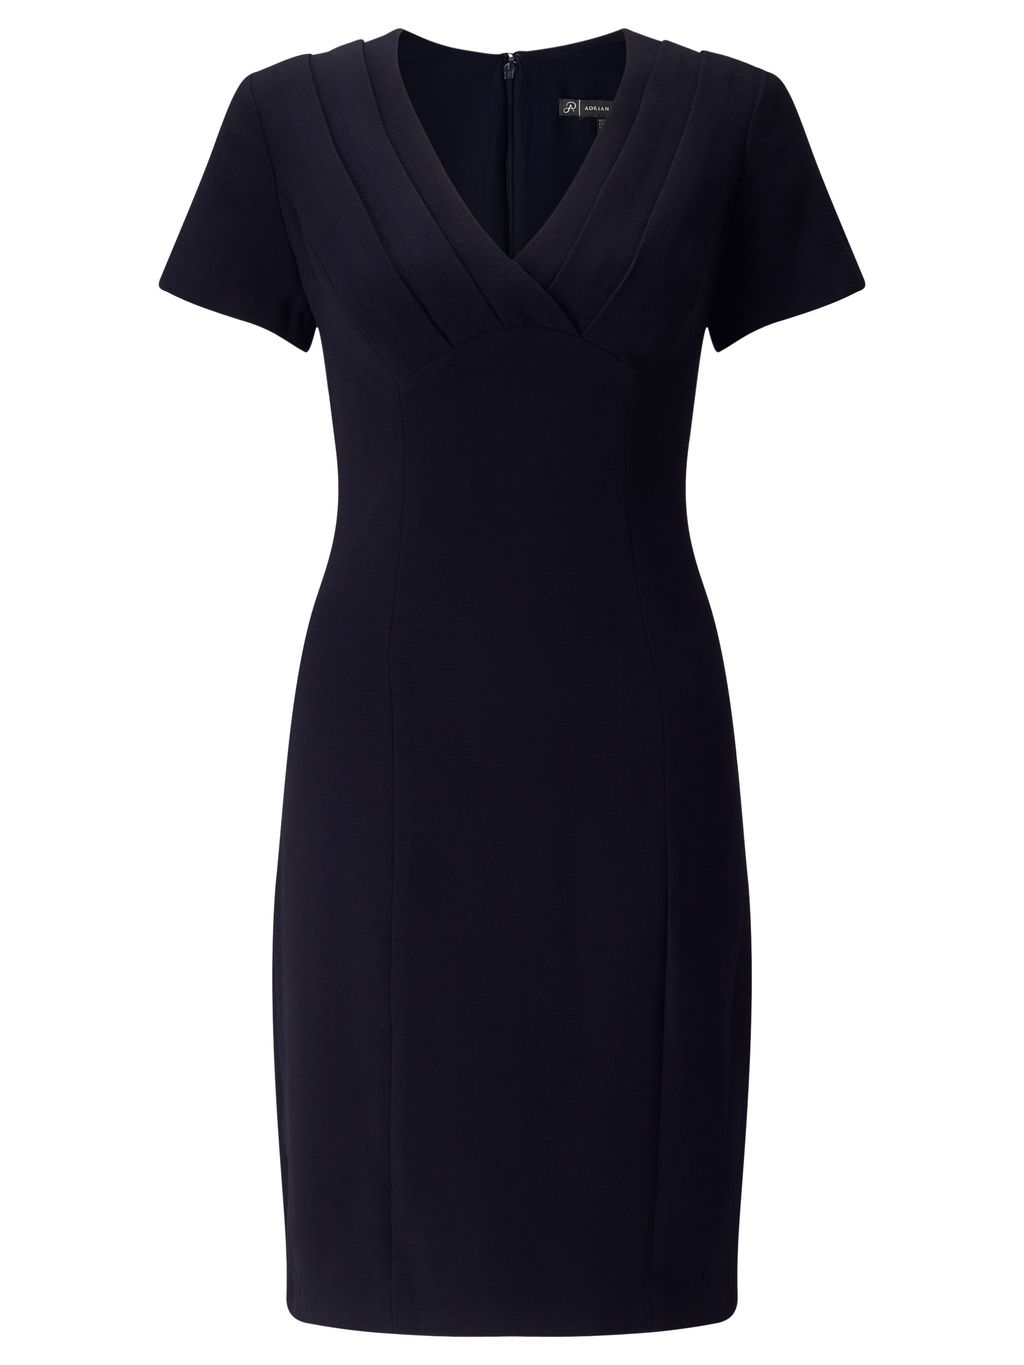 Crepe Dress With Wrap Front, Blue - style: faux wrap/wrap; neckline: v-neck; fit: tailored/fitted; pattern: plain; predominant colour: navy; occasions: work; length: just above the knee; fibres: polyester/polyamide - 100%; sleeve length: short sleeve; sleeve style: standard; texture group: crepes; pattern type: fabric; season: s/s 2016; wardrobe: investment